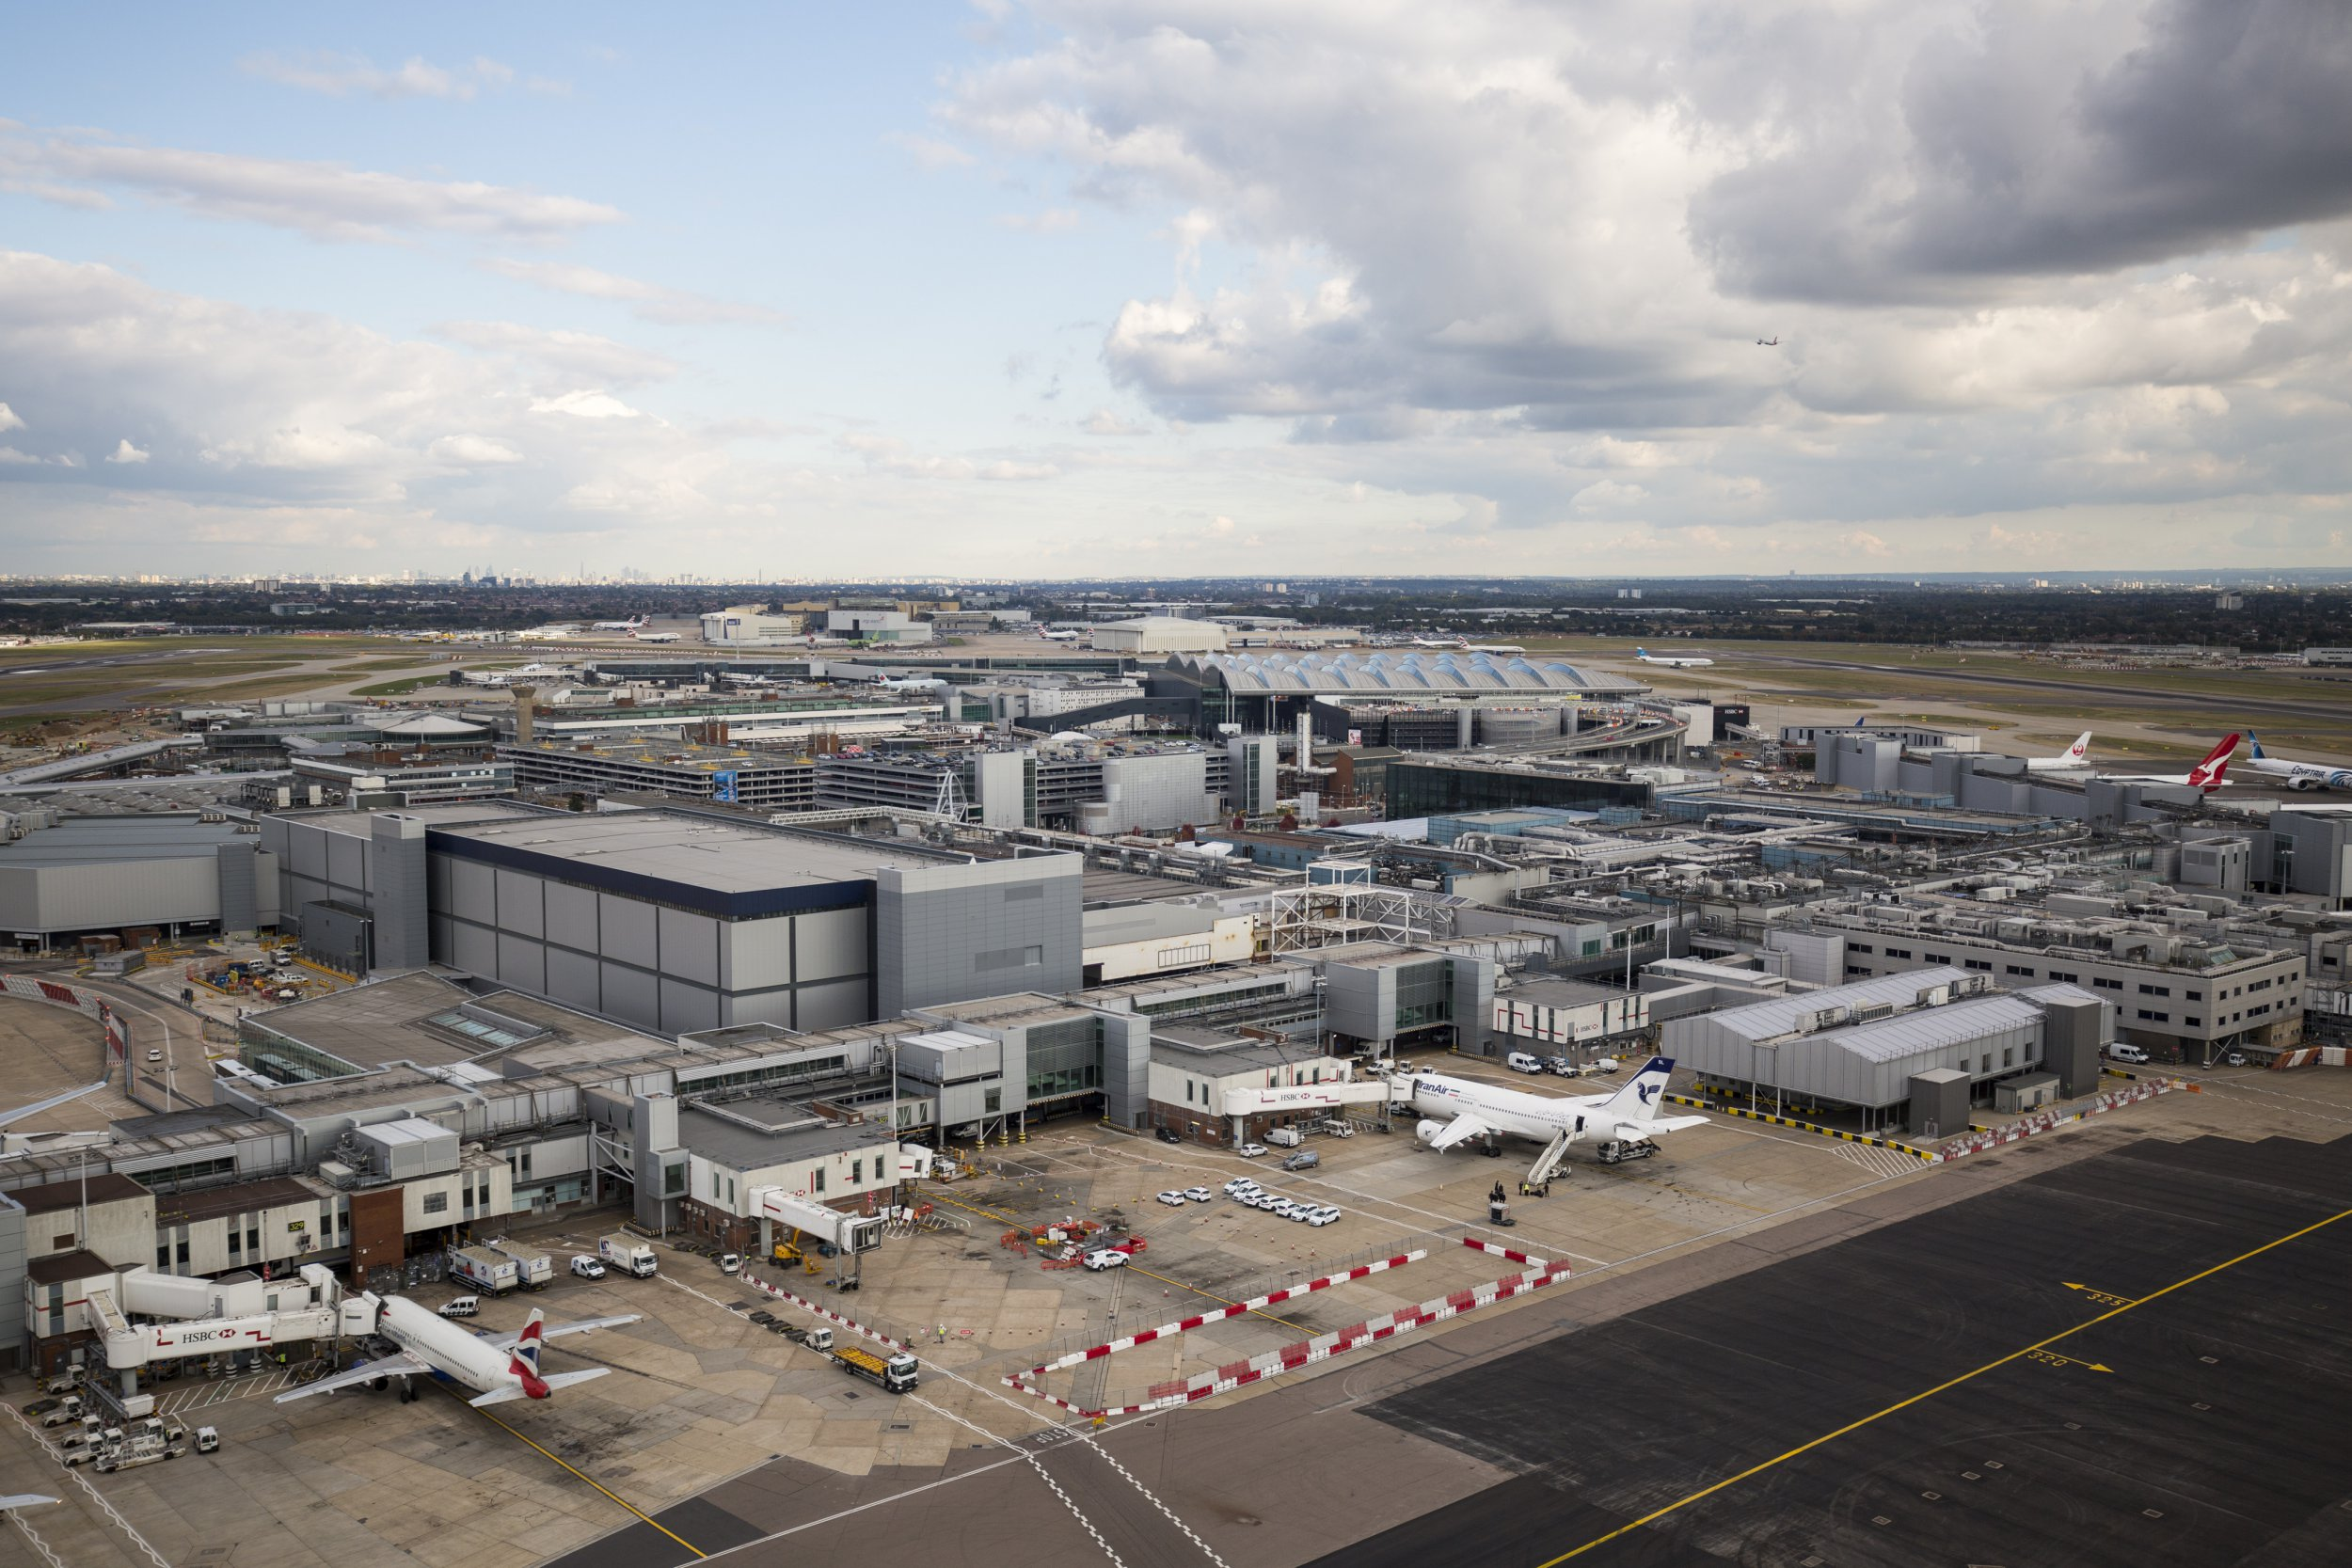 LONDON, ENGLAND - OCTOBER 11: A general view of Terminals 1 & 2 at Heathrow Airport on October 11, 2016 in London, England. The UK government has said it will announce a decision on airport expansion soon. Proposals include either a third runway at Heathrow, an extension of a runway at the airport or a new runway at Gatwick Airport. (Photo by Jack Taylor/Getty Images)